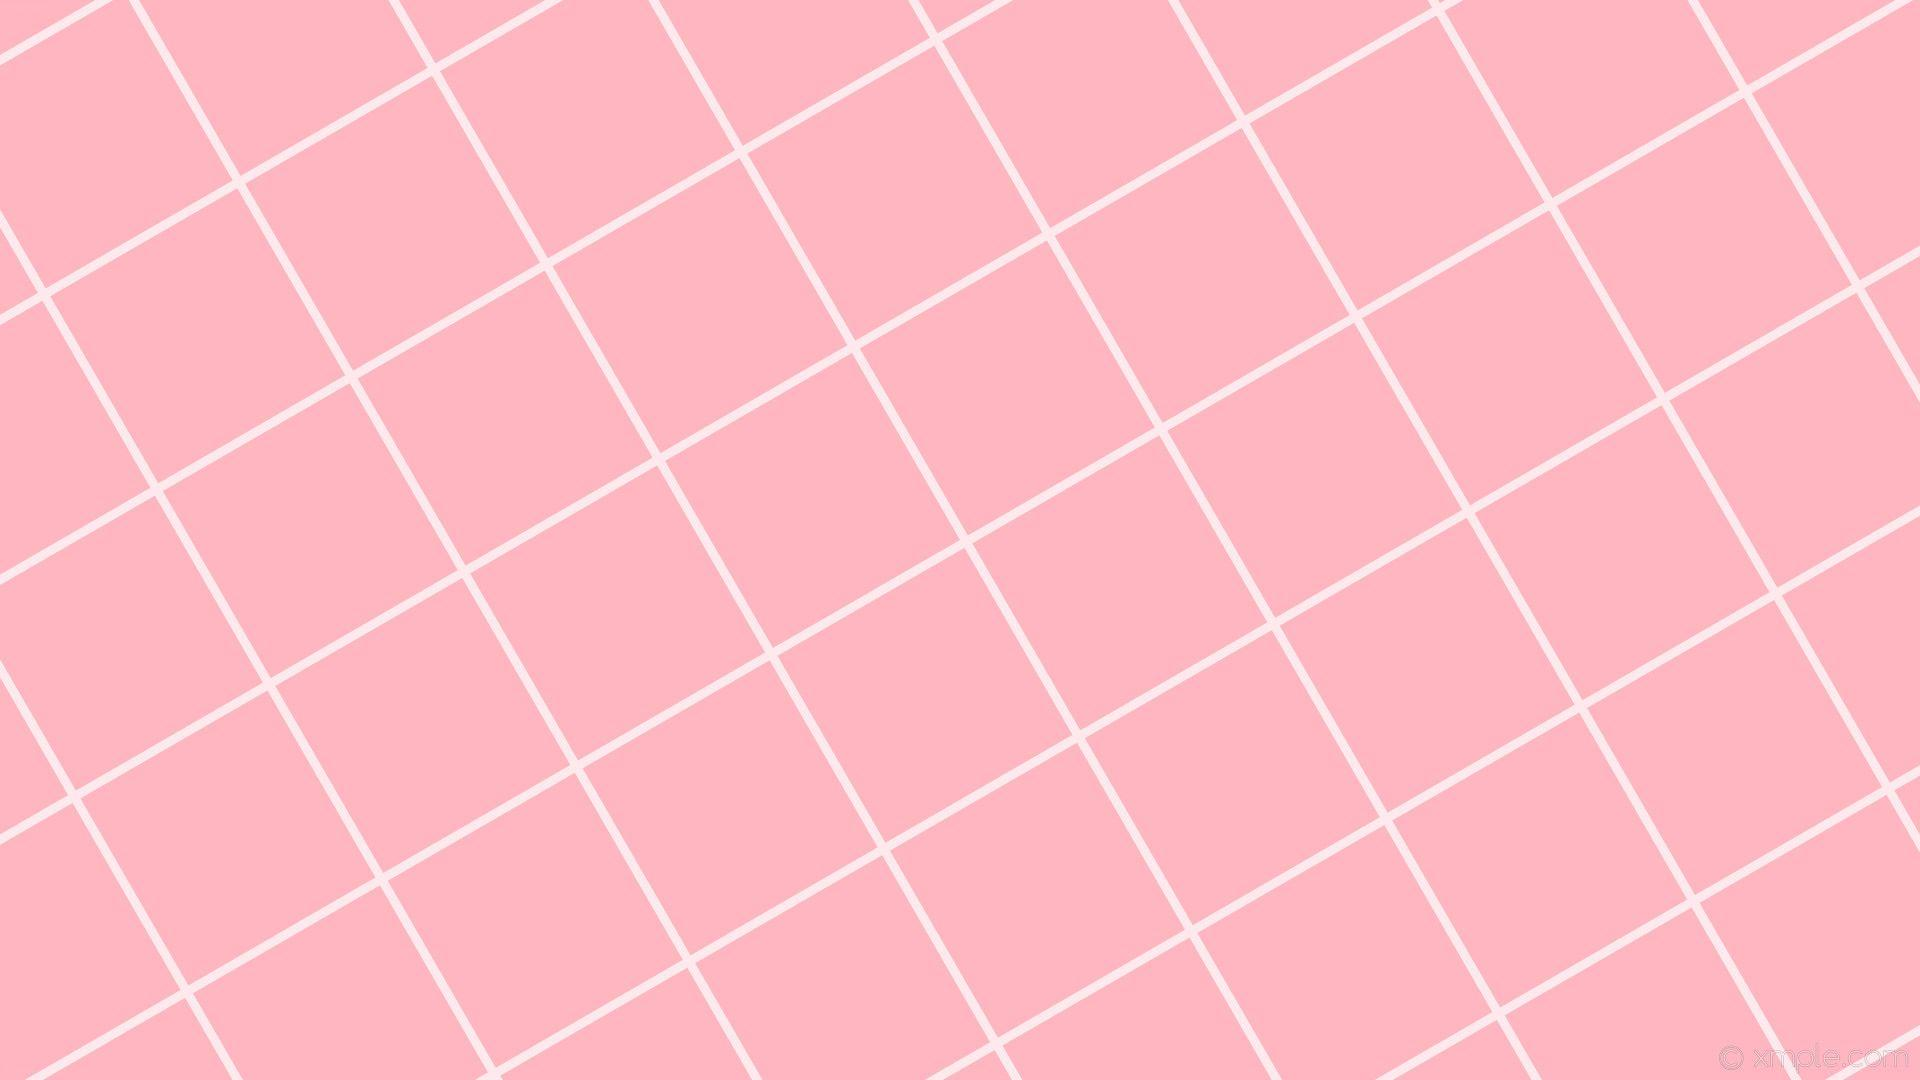 Aesthetic Pastel Pink Computer Wallpapers - Wallpaper Cave